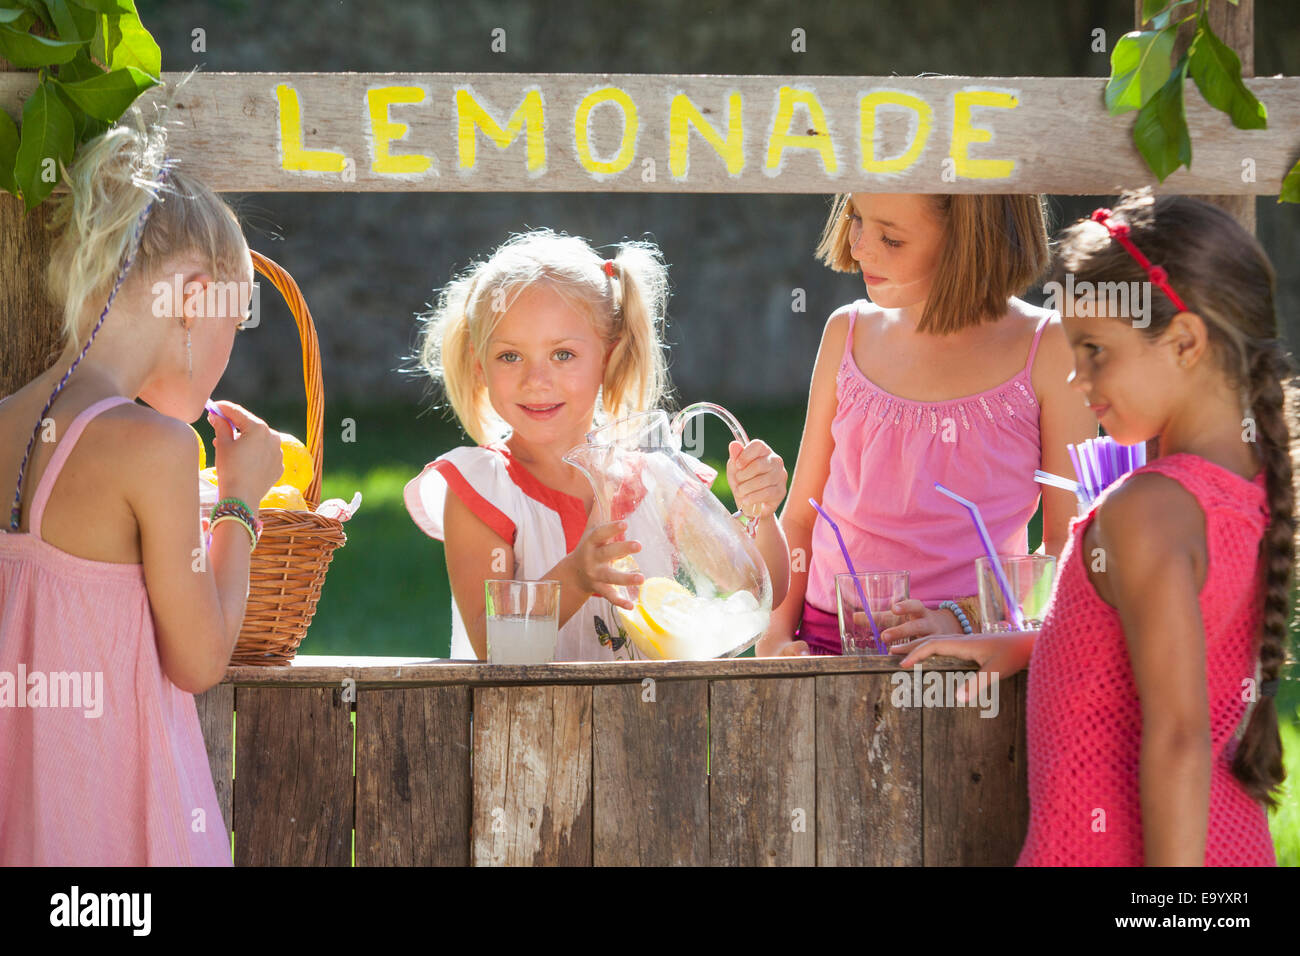 Candid portrait of four girls at lemonade stand in park - Stock Image